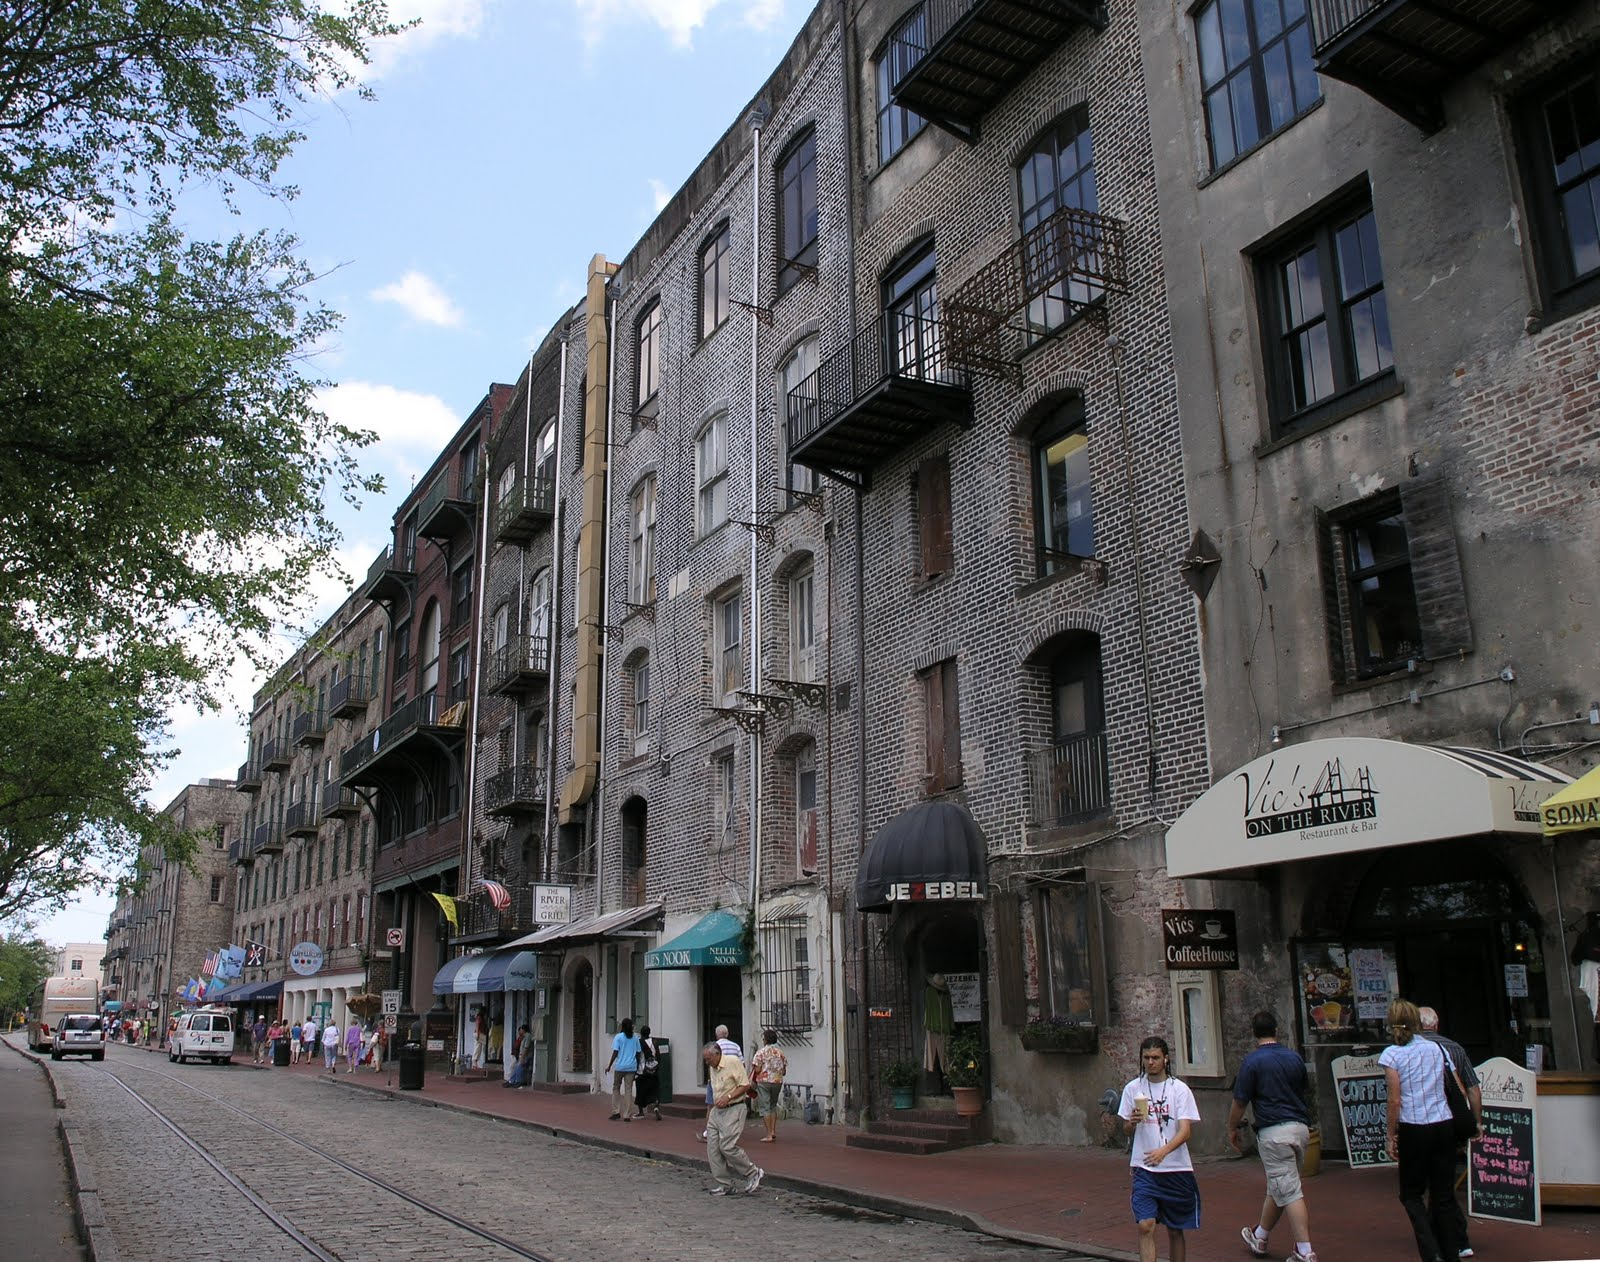 savannah ga gifts & things. shopping. shop savannah antiques art galleries boutique shops books coffee & desserts consignments electronics florist gift shops gowns & tuxes grocery stores jewelry stores kid's clothing men's clothing music stores pets, dogs & cats.